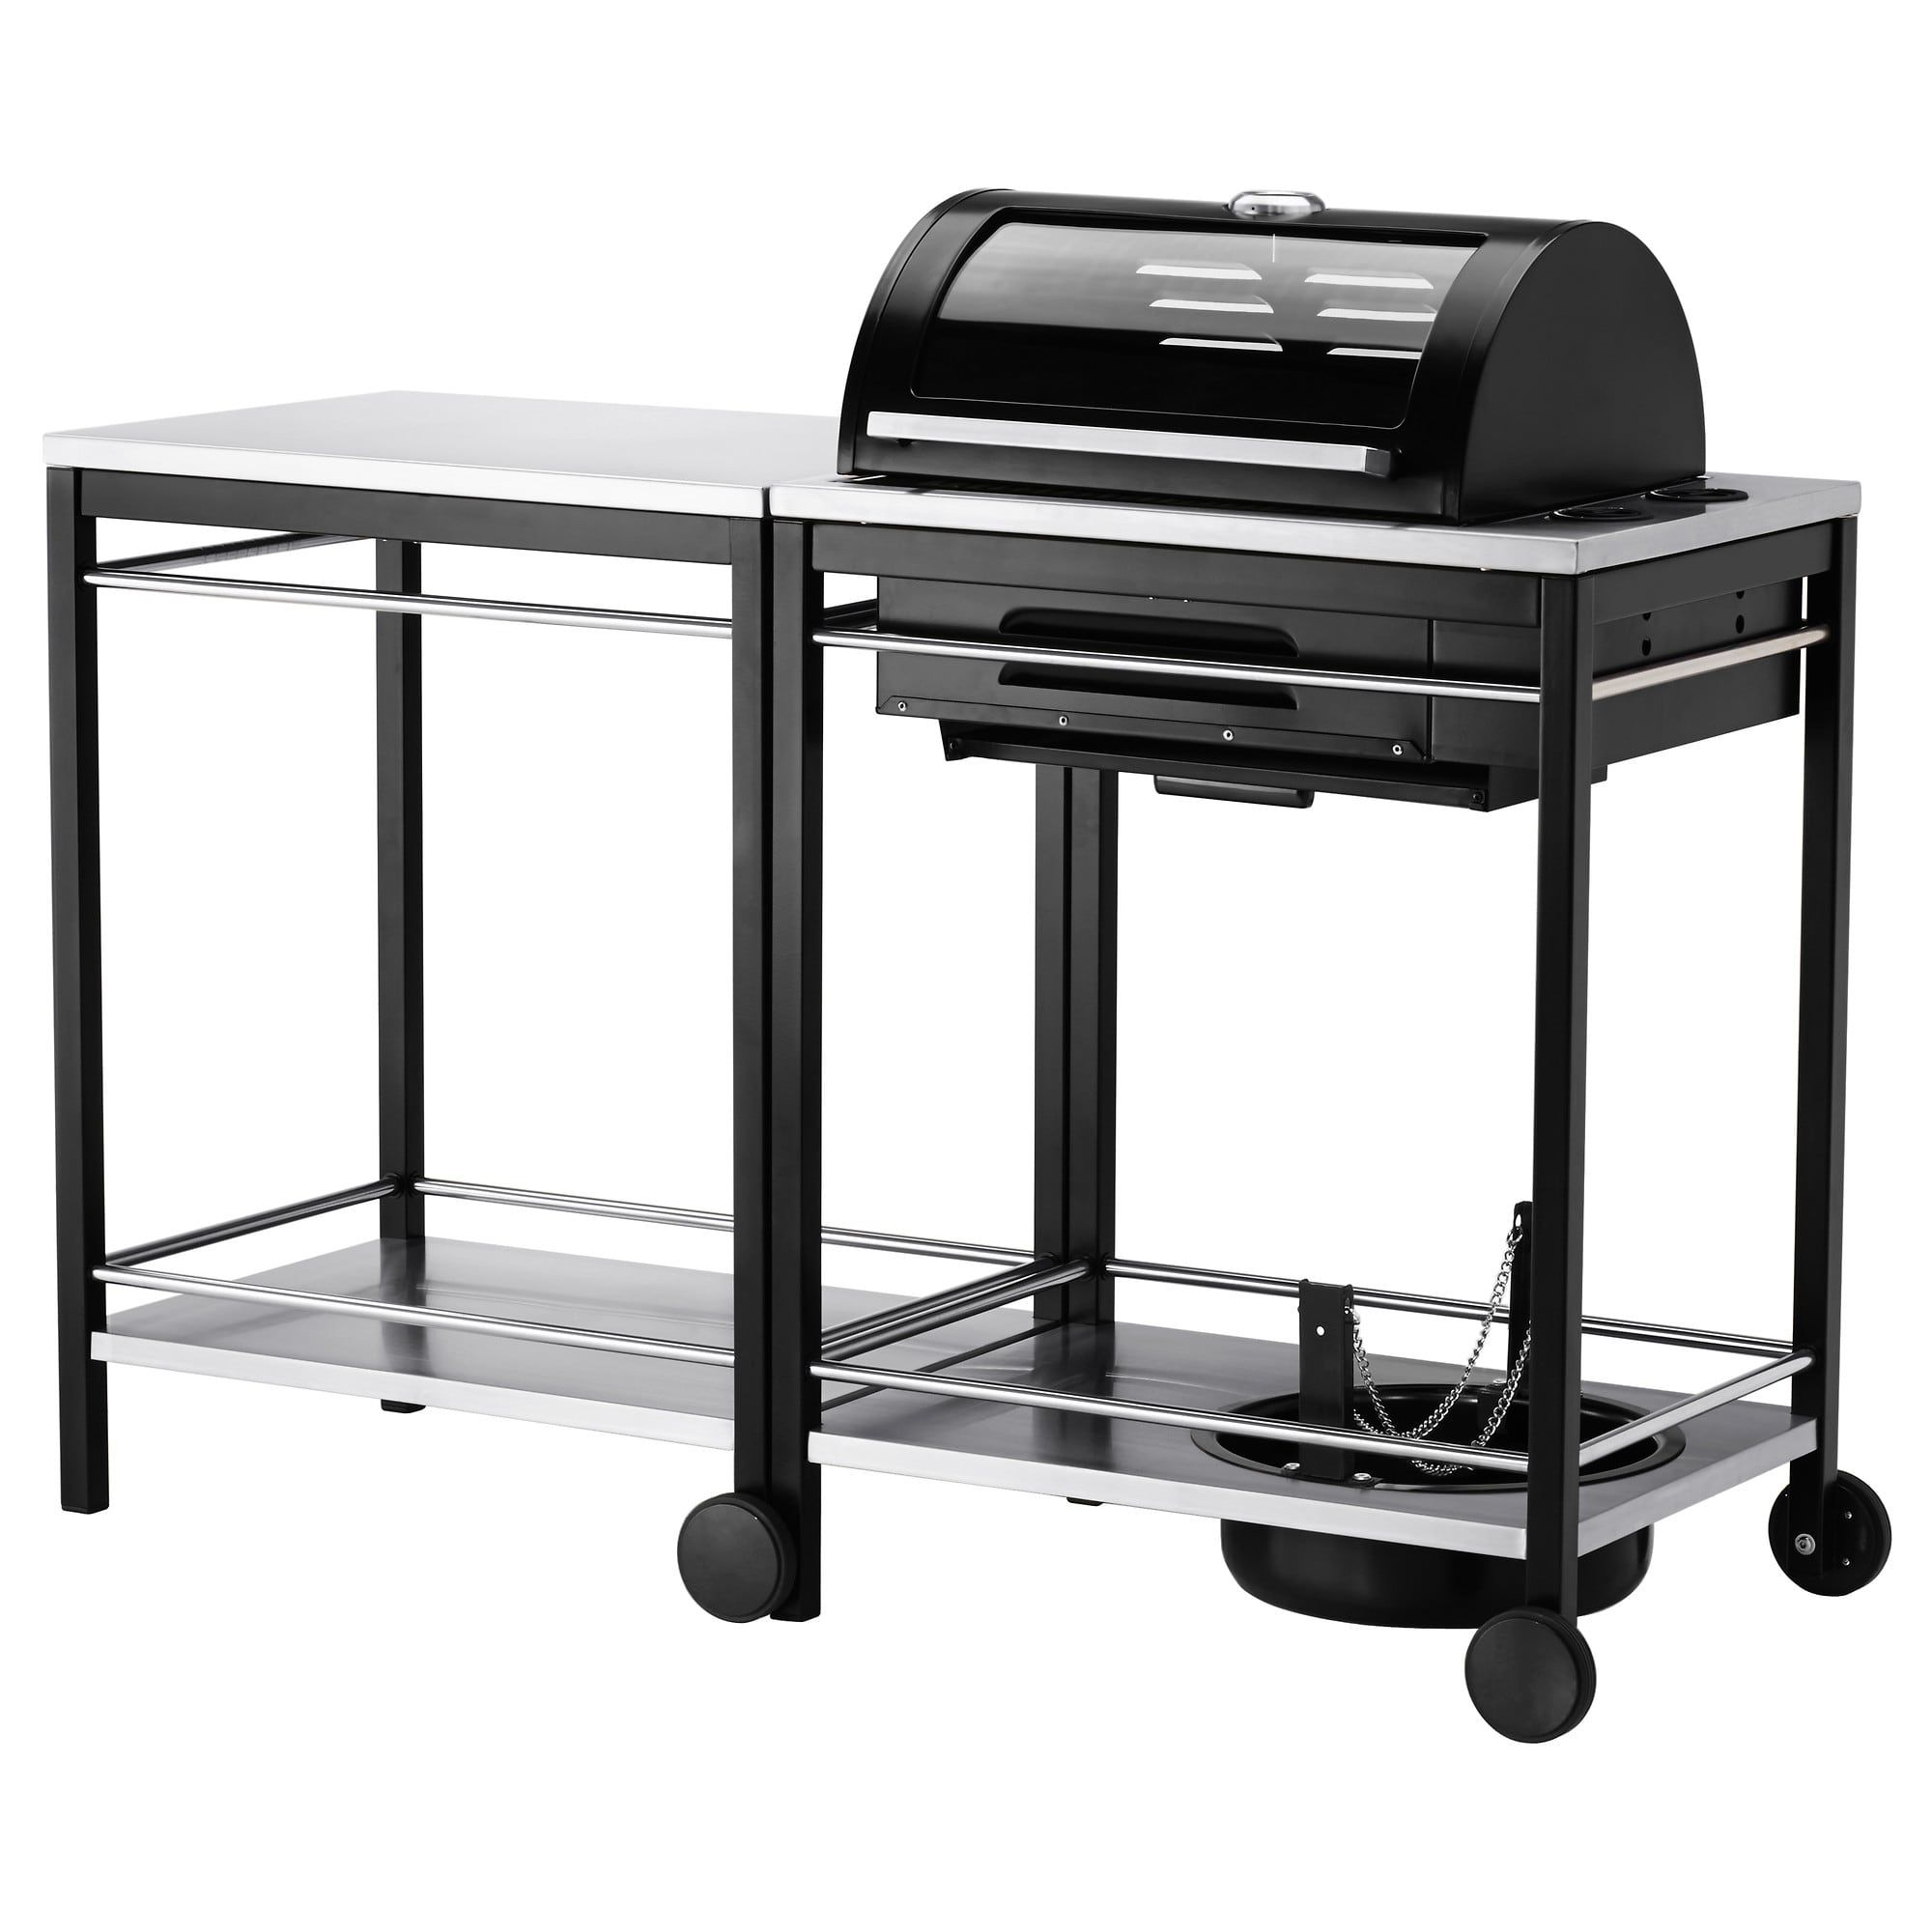 Ikea Barbecue Charbon De Bois $558 klasen gas barbecue with trolley - stainless steel